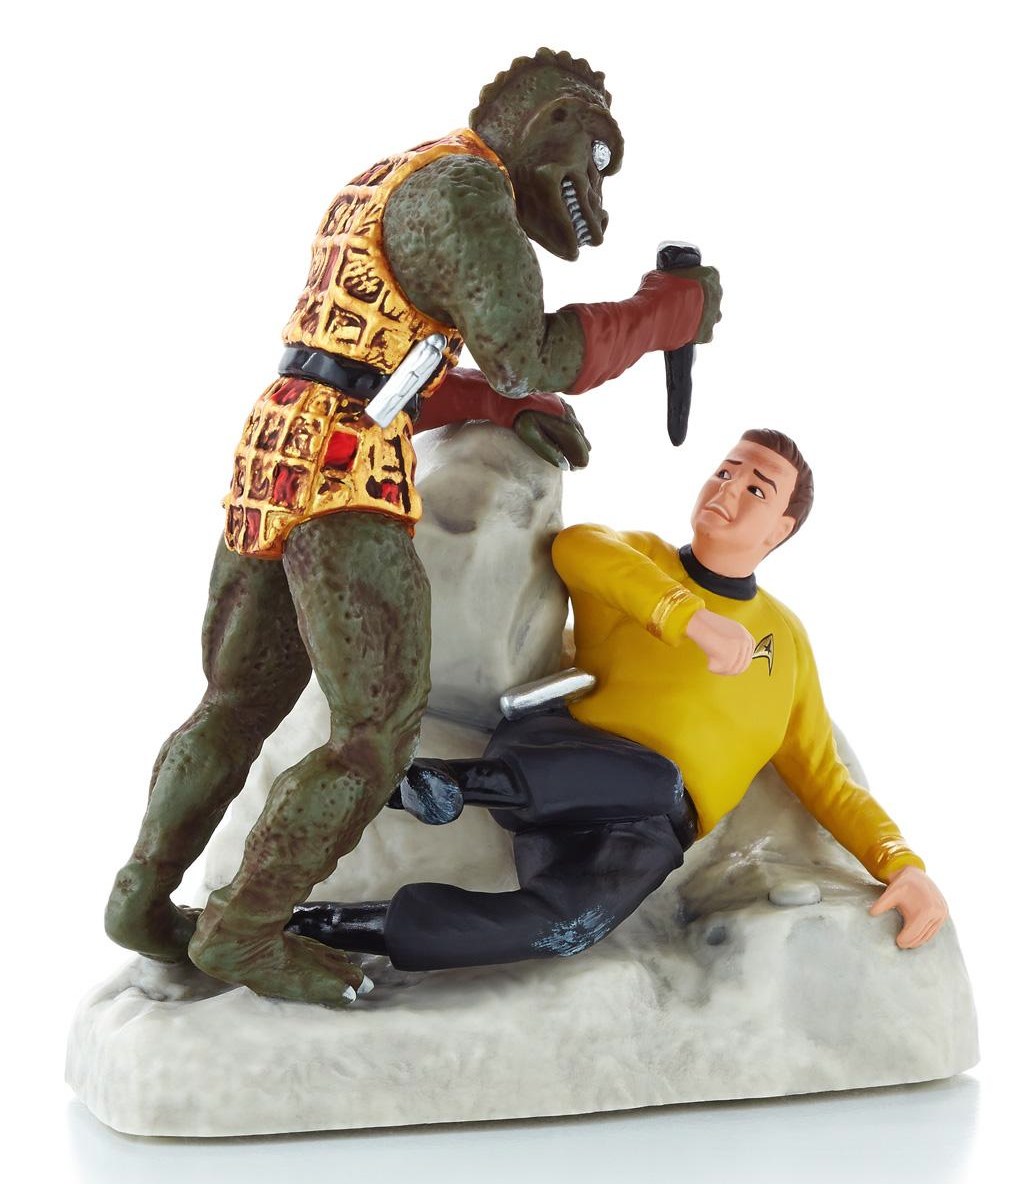 The Kirk/Gorn Ornament Is Undoubtedly Our Favorite U2013 Itu0027s An Iconic Scene  And Hallmark Have Immortalized It Rather Wonderfully In This Cute Ornament!